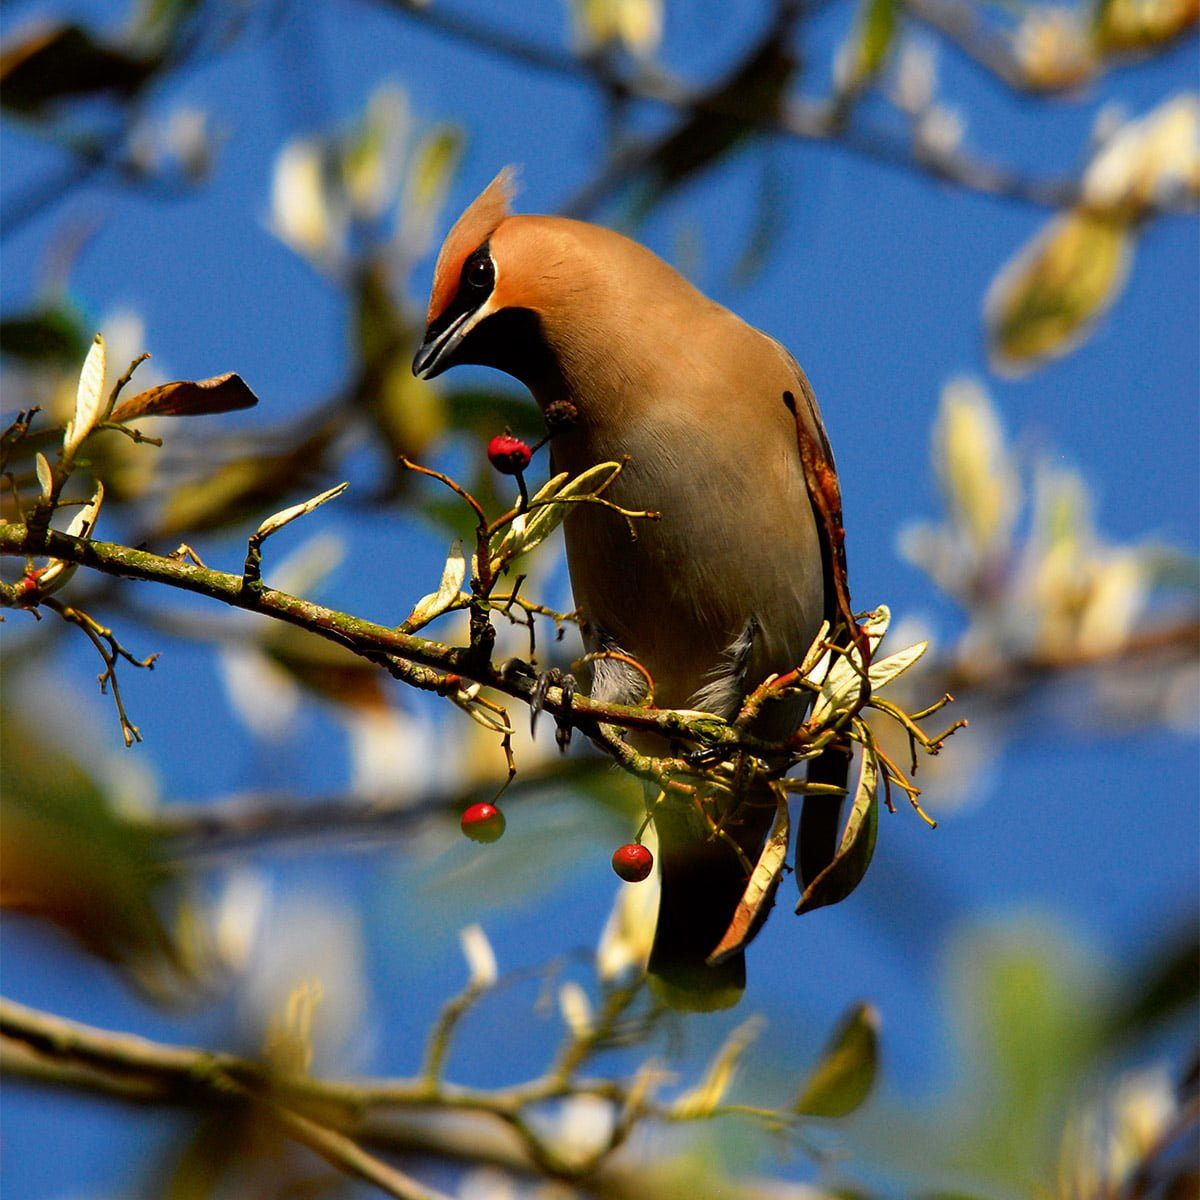 Waxwing resting on branch eating red berries